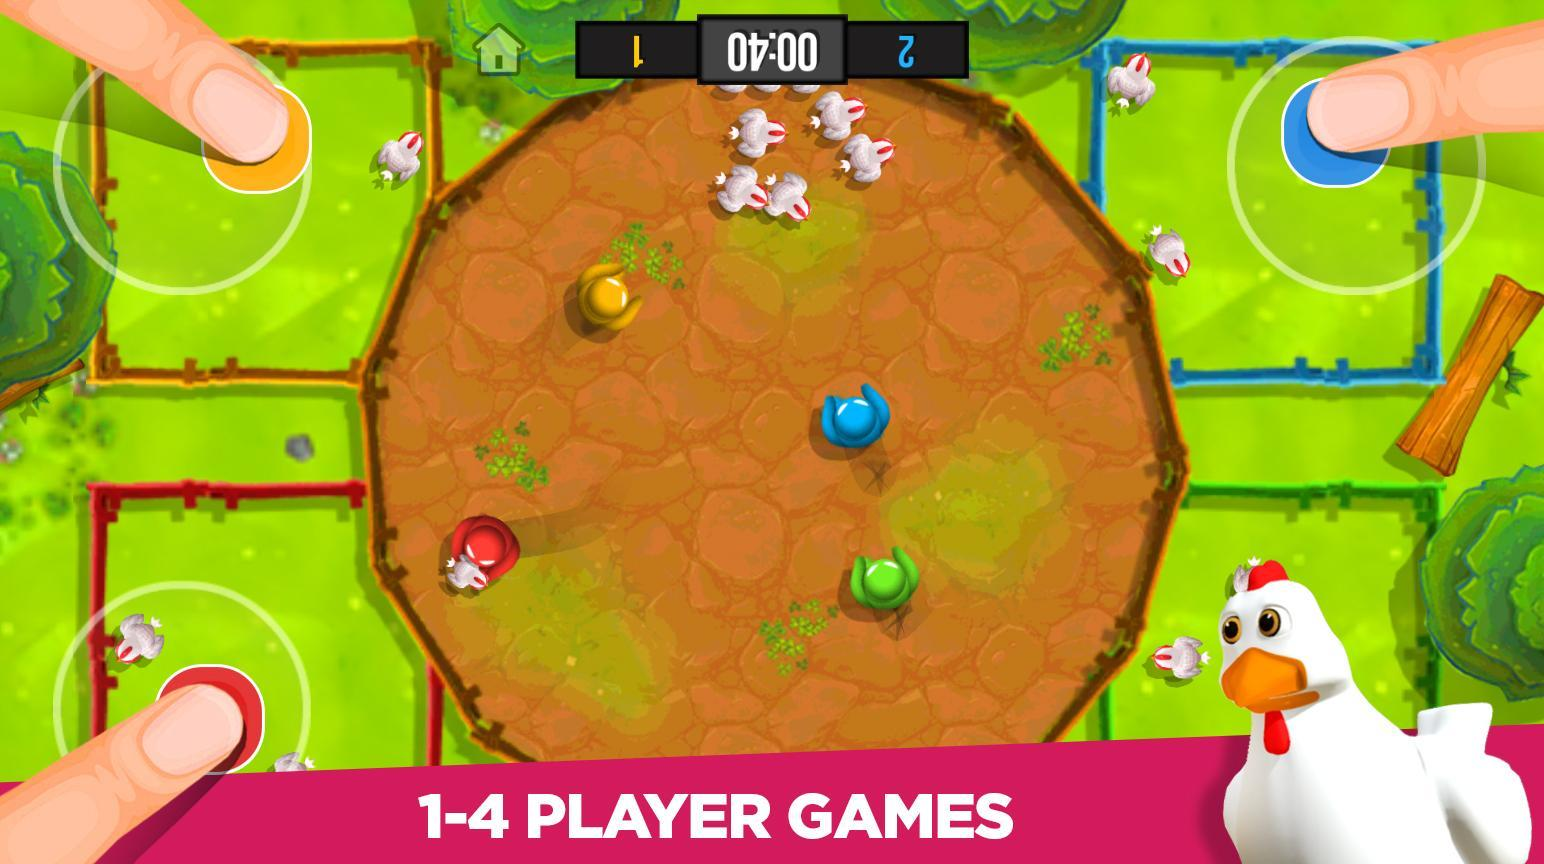 1234 Player Games Apk | Abcforkids